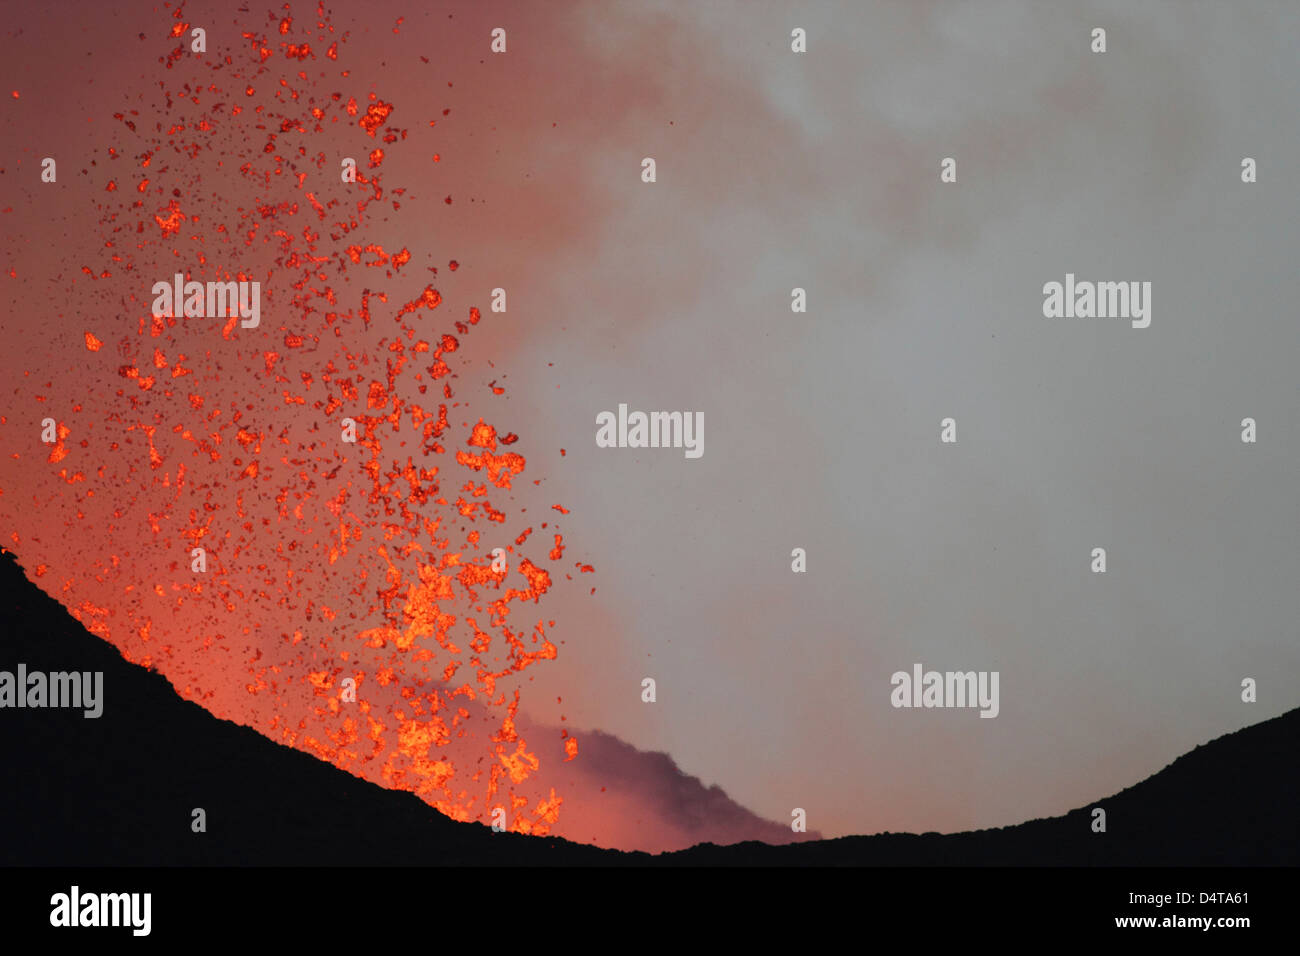 Lava bombs expelled during a basaltic fissure eruption on Nyamuragira Volcano. - Stock Image